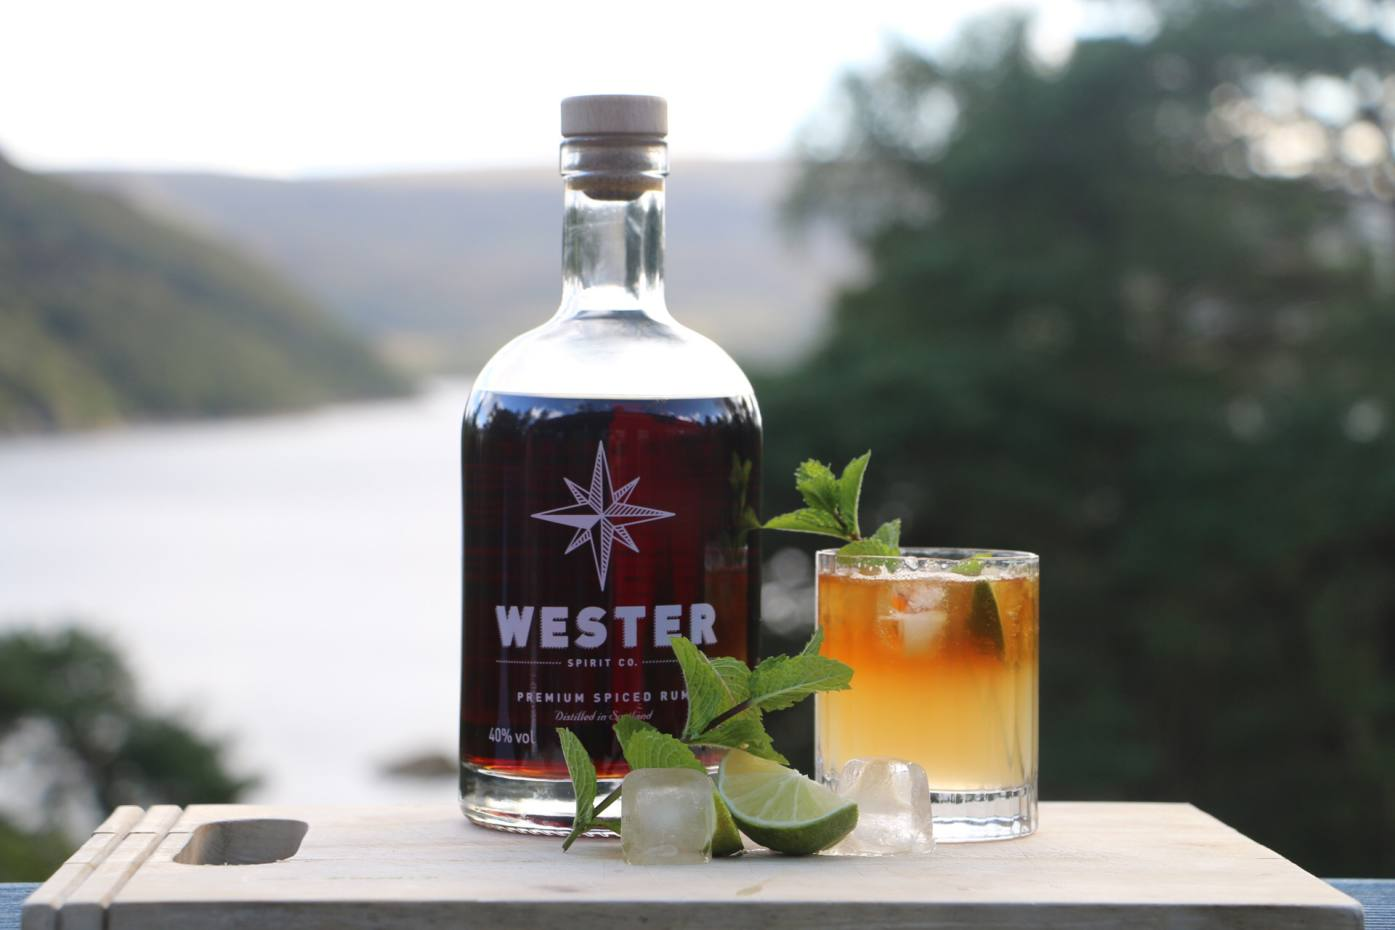 Wester Premium Spiced Rum (£35 for 70cl) is infused with spices such as star anise, nutmeg and cardamom